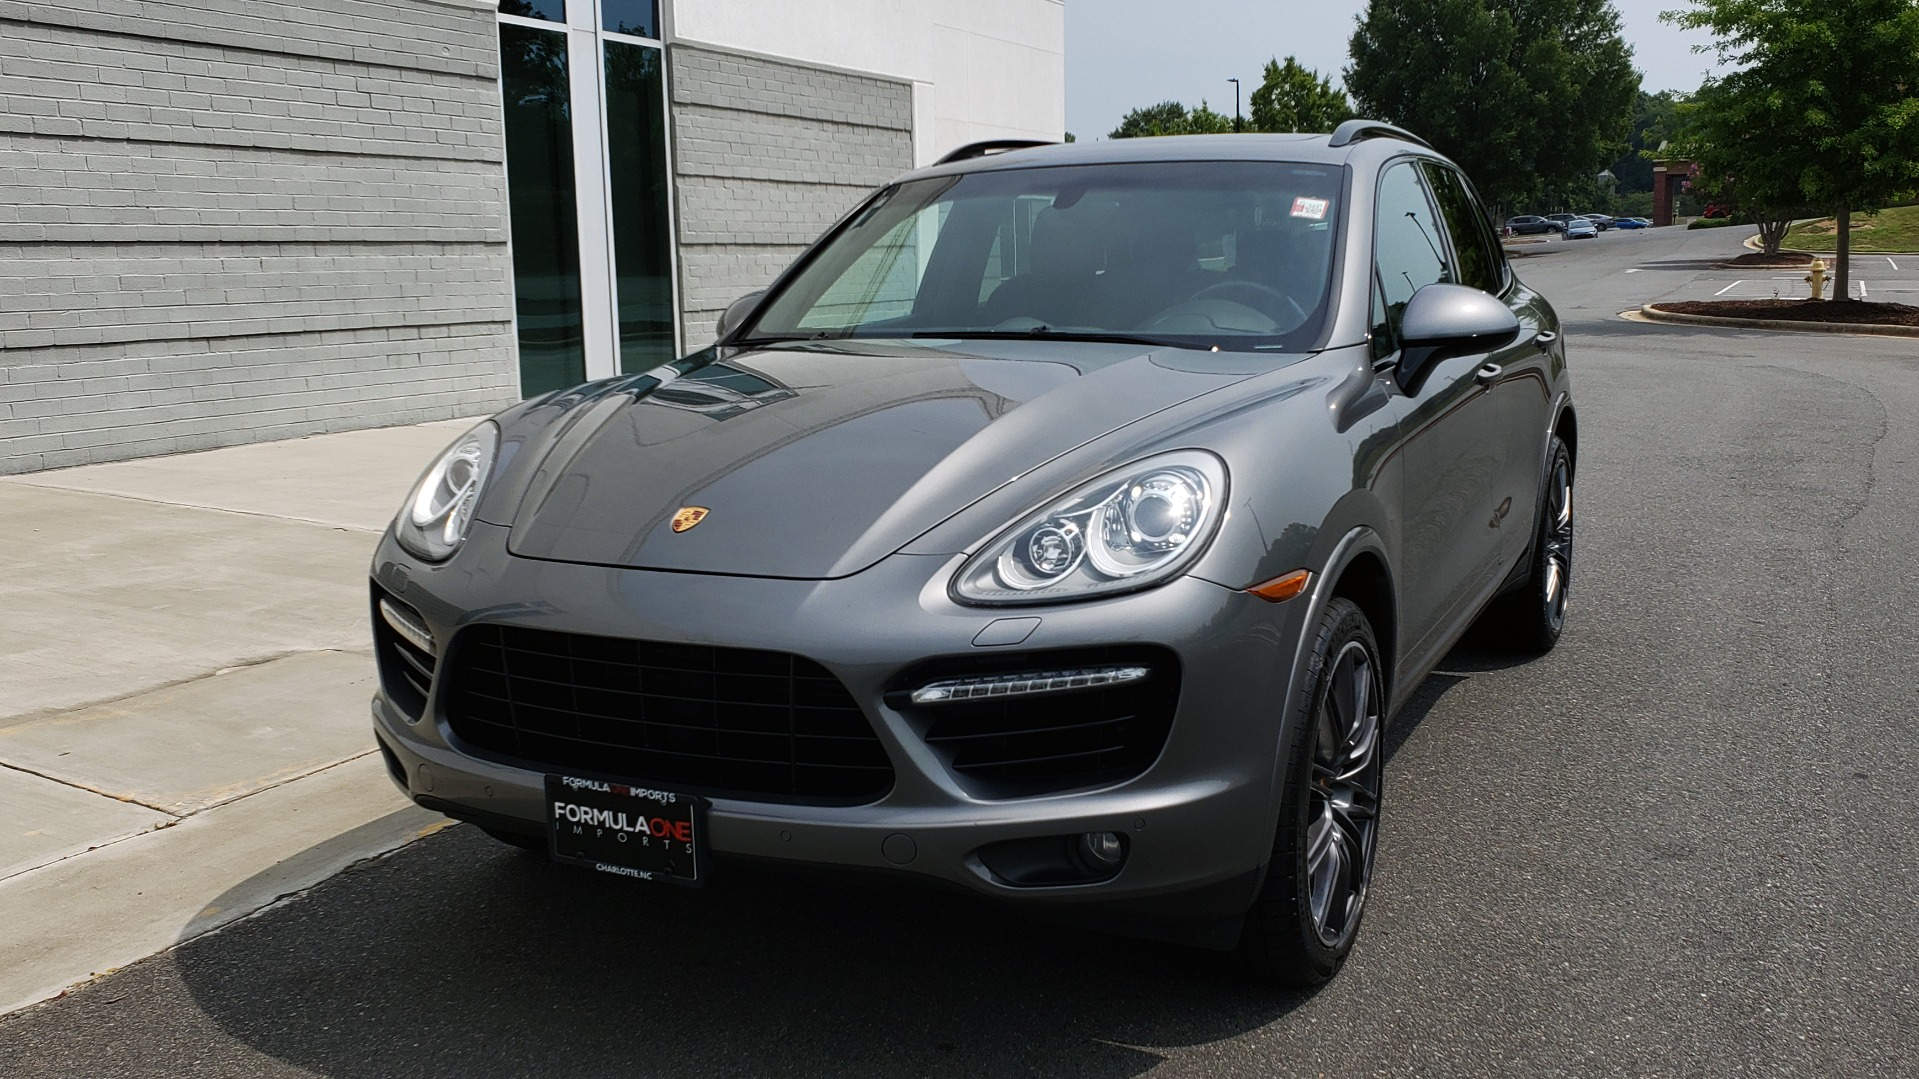 Used 2014 Porsche CAYENNE TURBO S / AWD / NAV / BOSE / PANO-ROOF / LCA / REARVIEW for sale Sold at Formula Imports in Charlotte NC 28227 3